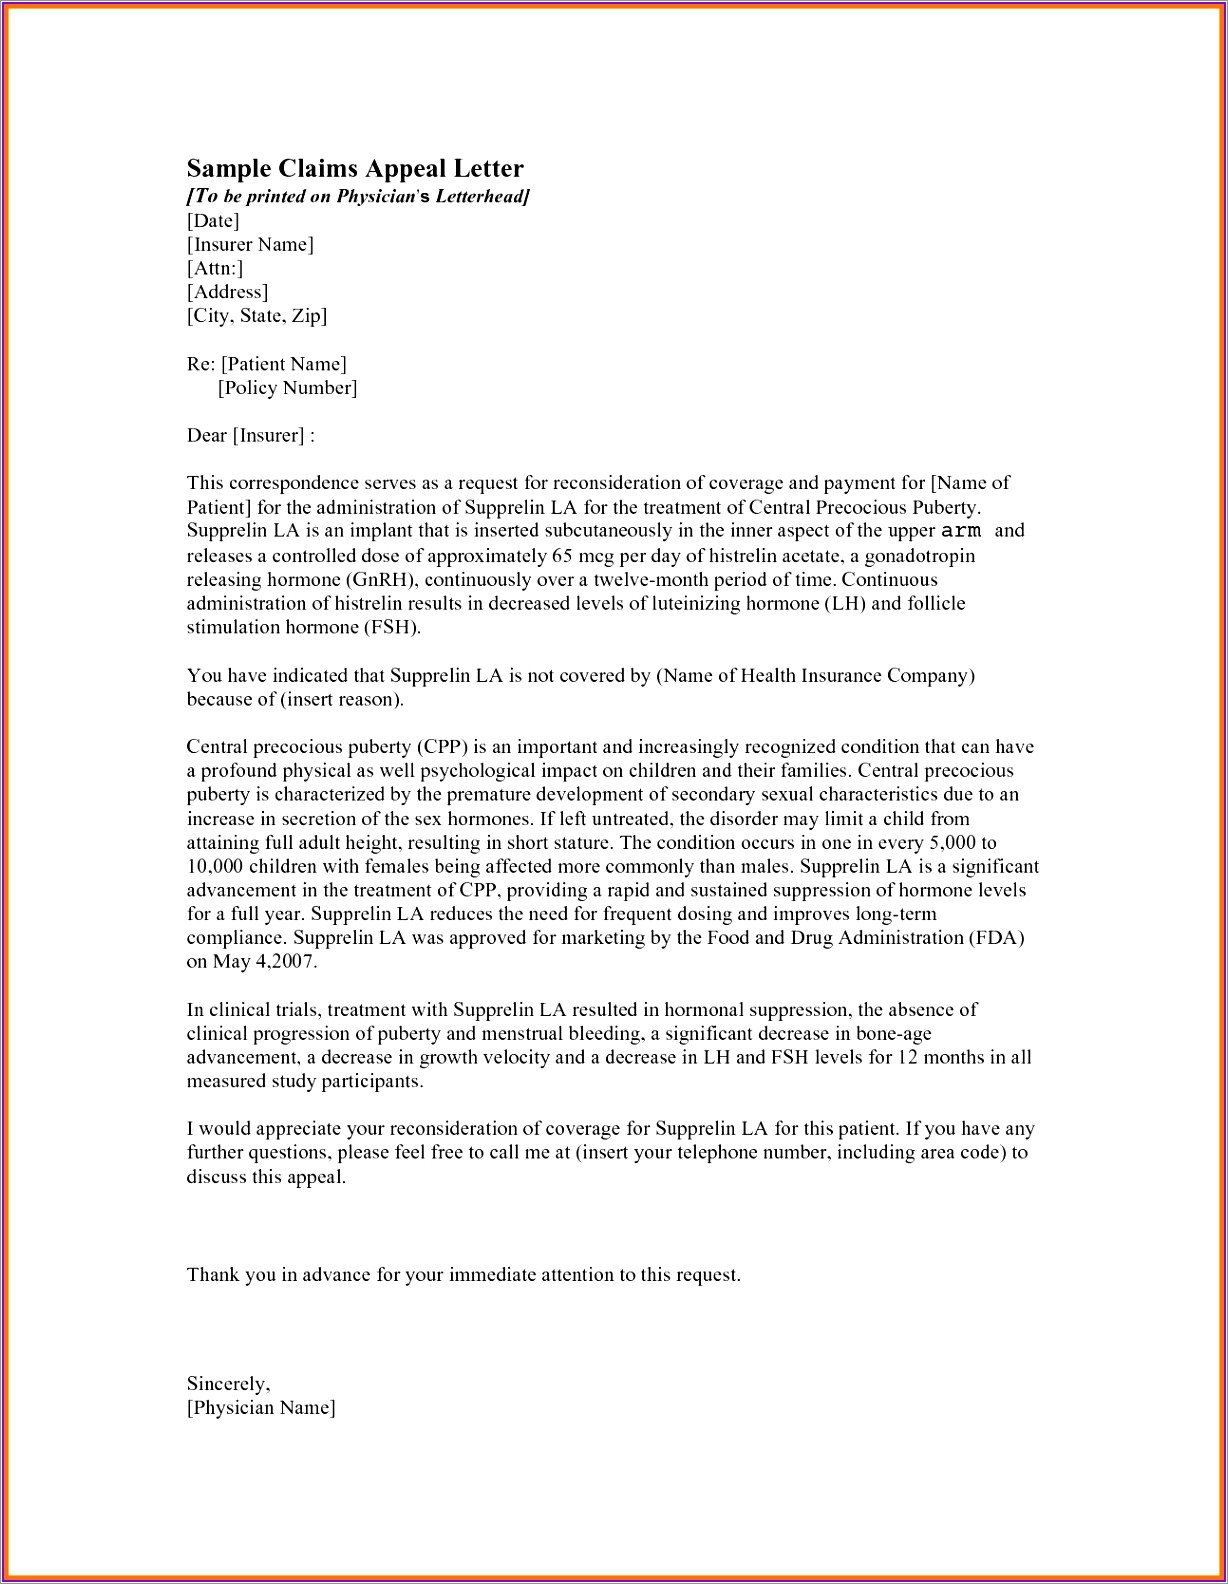 Reconsideration Insurance Appeal Letter Template